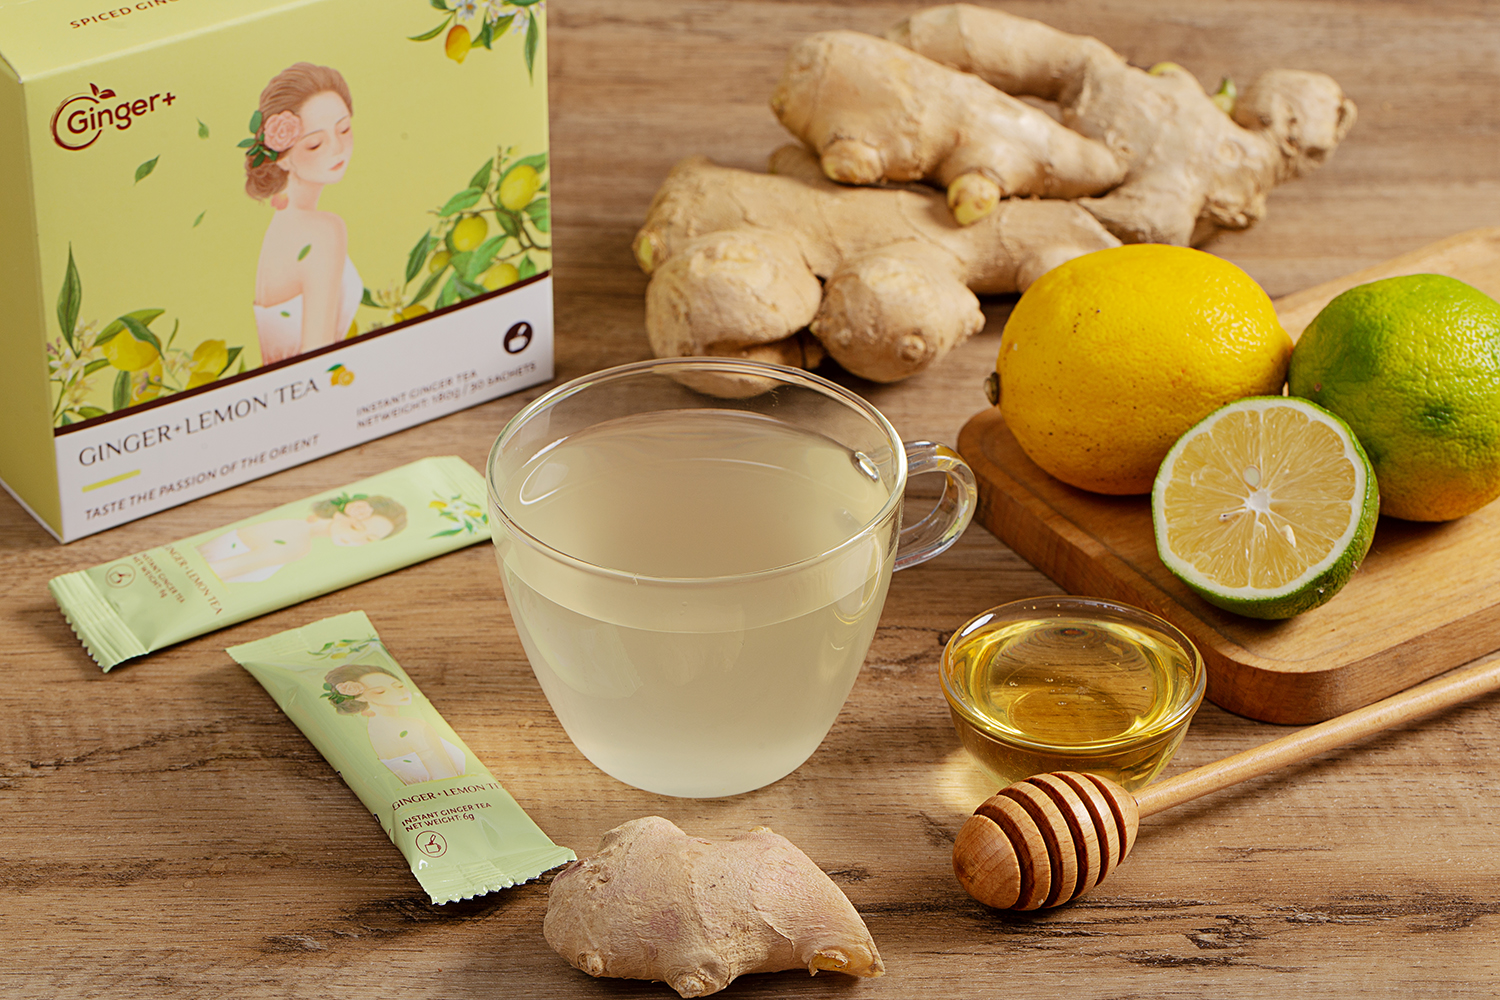 ginger-plus-instant-ginger-tea-details-trade-xl-limited-westland-supply-chain-management-01